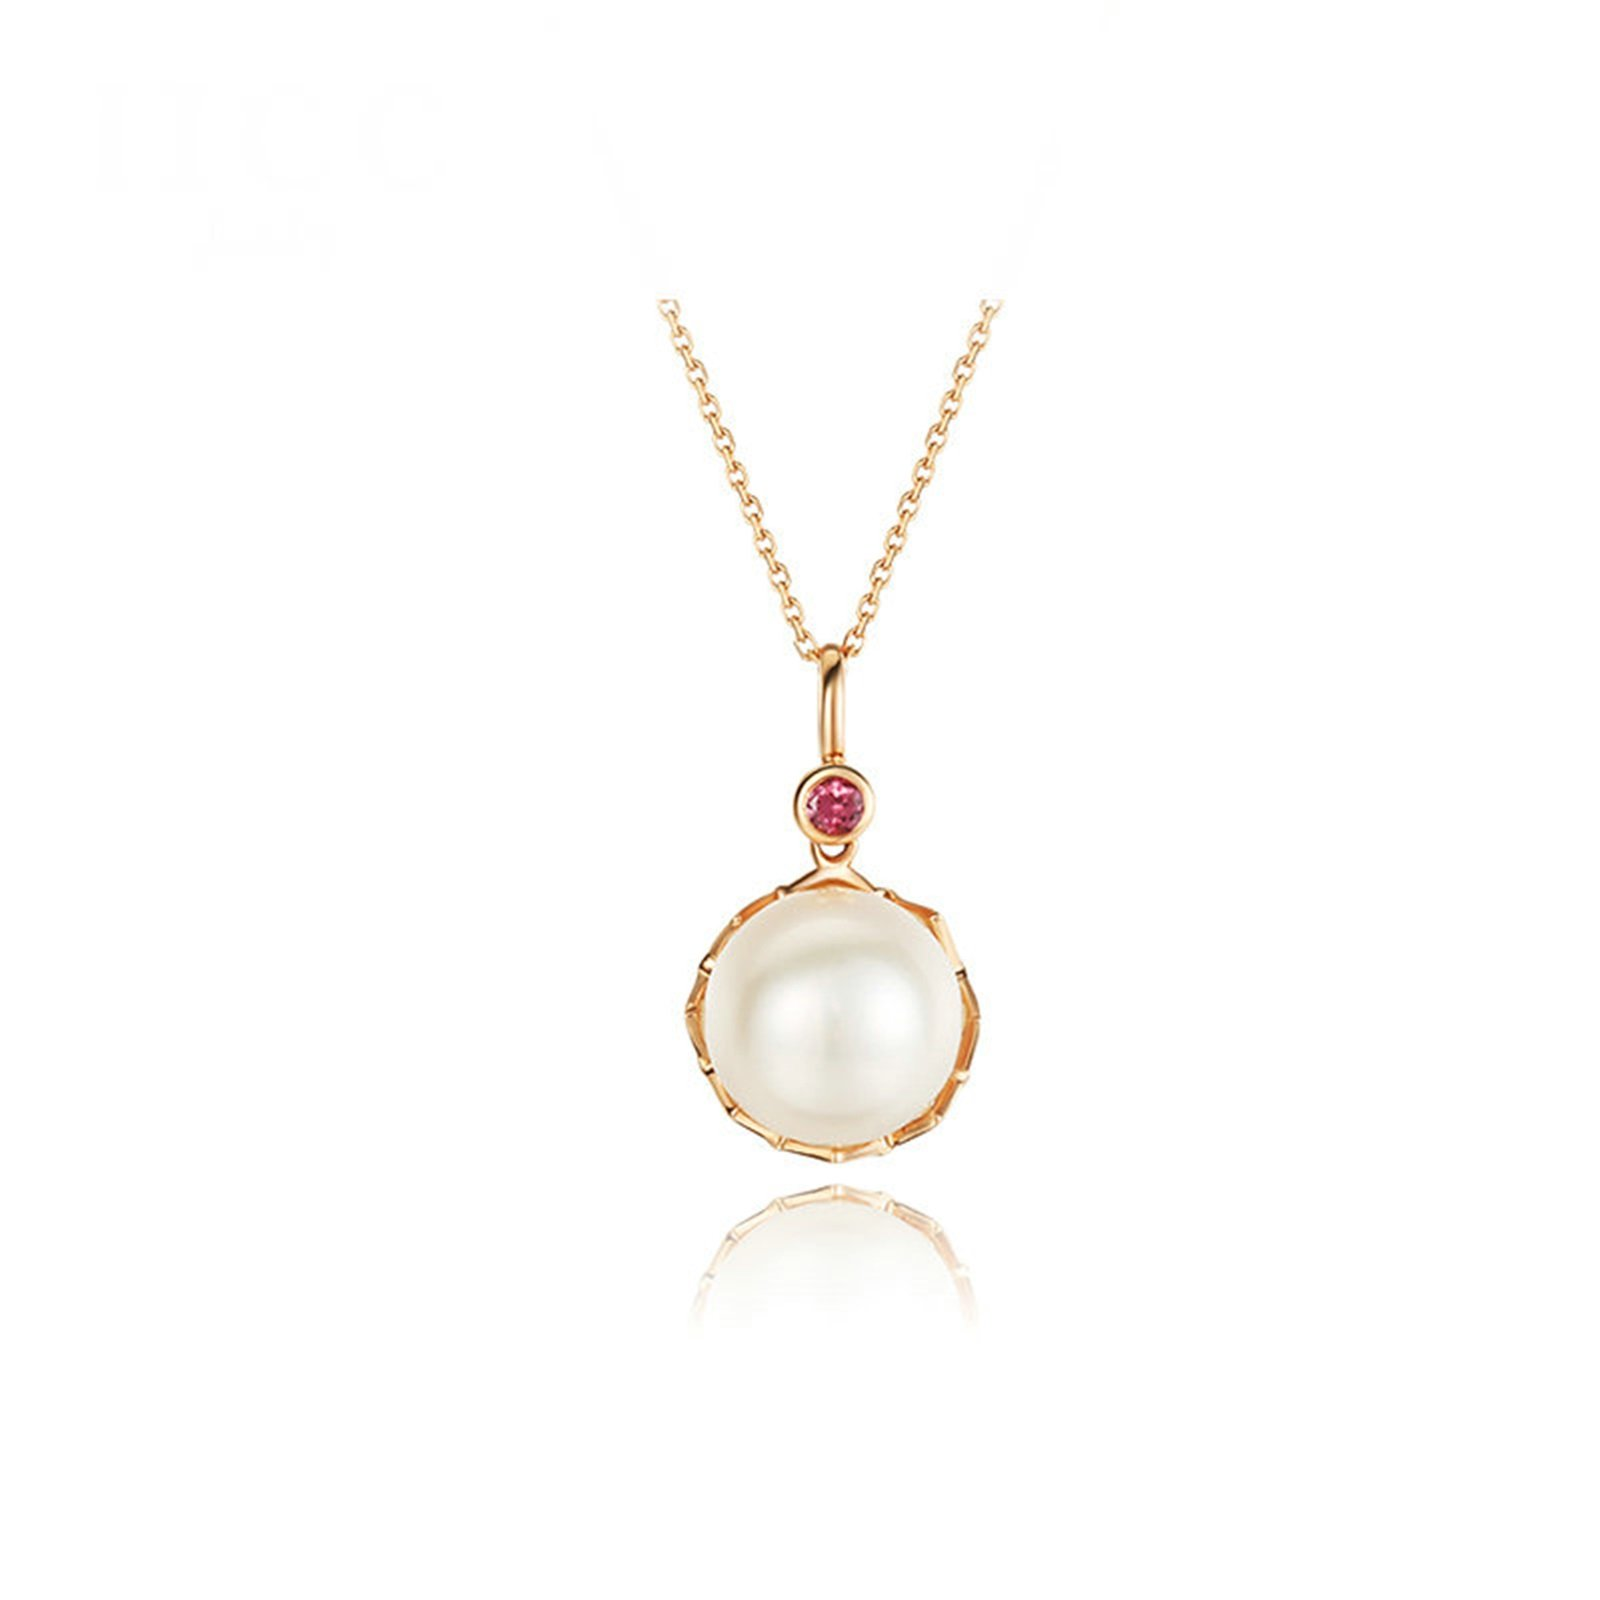 Daesar Elegant 18K Gold Necklace For Women Pearl Pendant Necklace Rose Gold Chain Length: 40+5CM